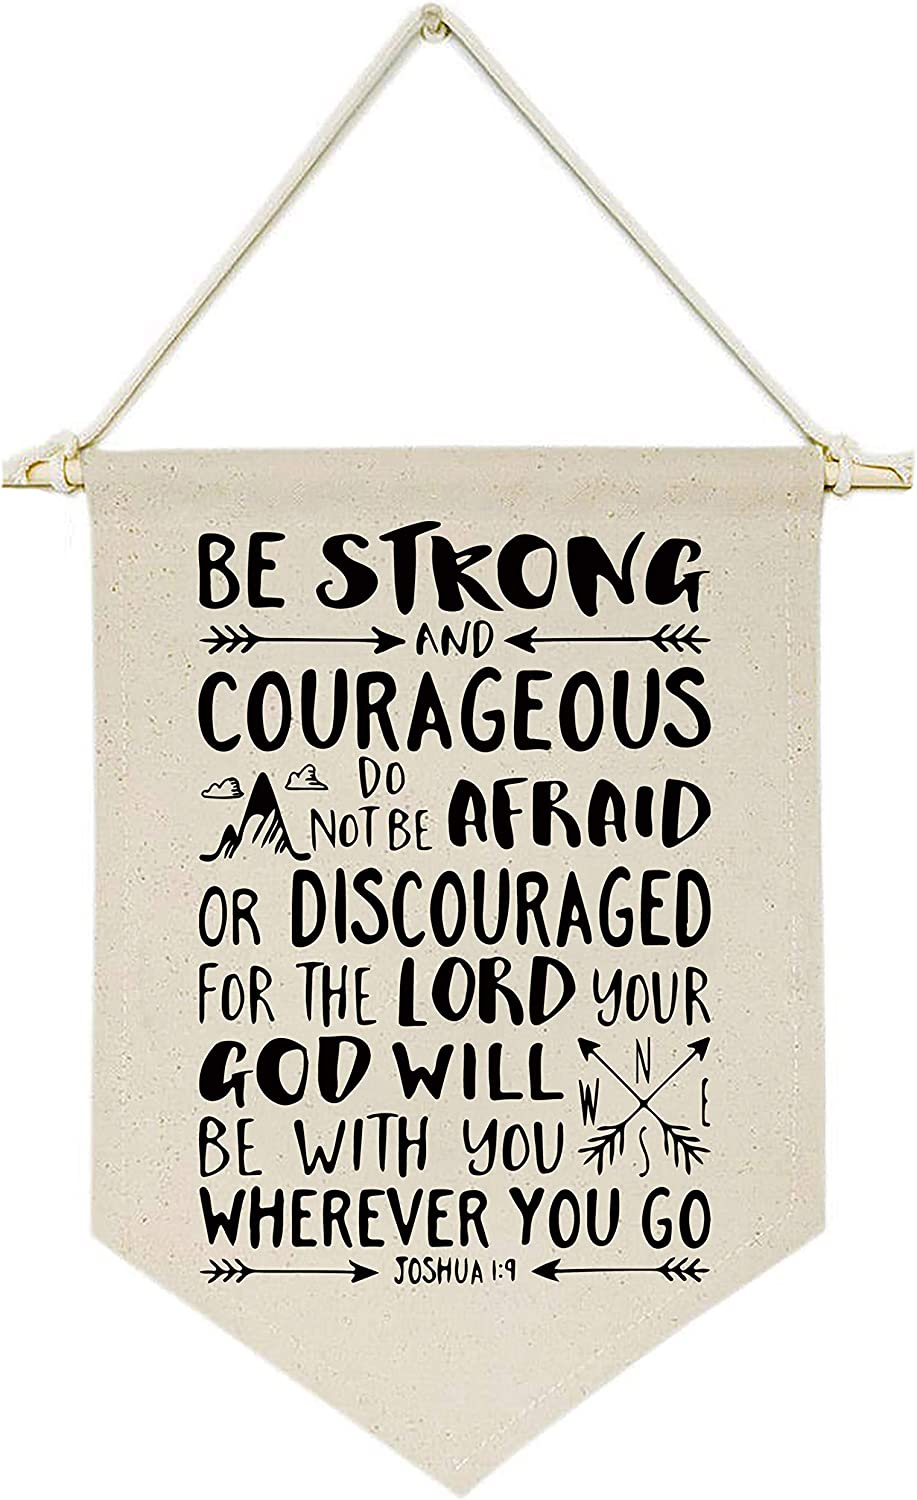 Be Strong and Courageous,Do Not Be Afraid or Discouraged-Canvas Hanging Flag Banner Wall Sign Decor Gift for Baby Kids Girl Boy Nursery Teen Room Front Door -Joshua 1:9-Bible Verse,Religious,Scripture